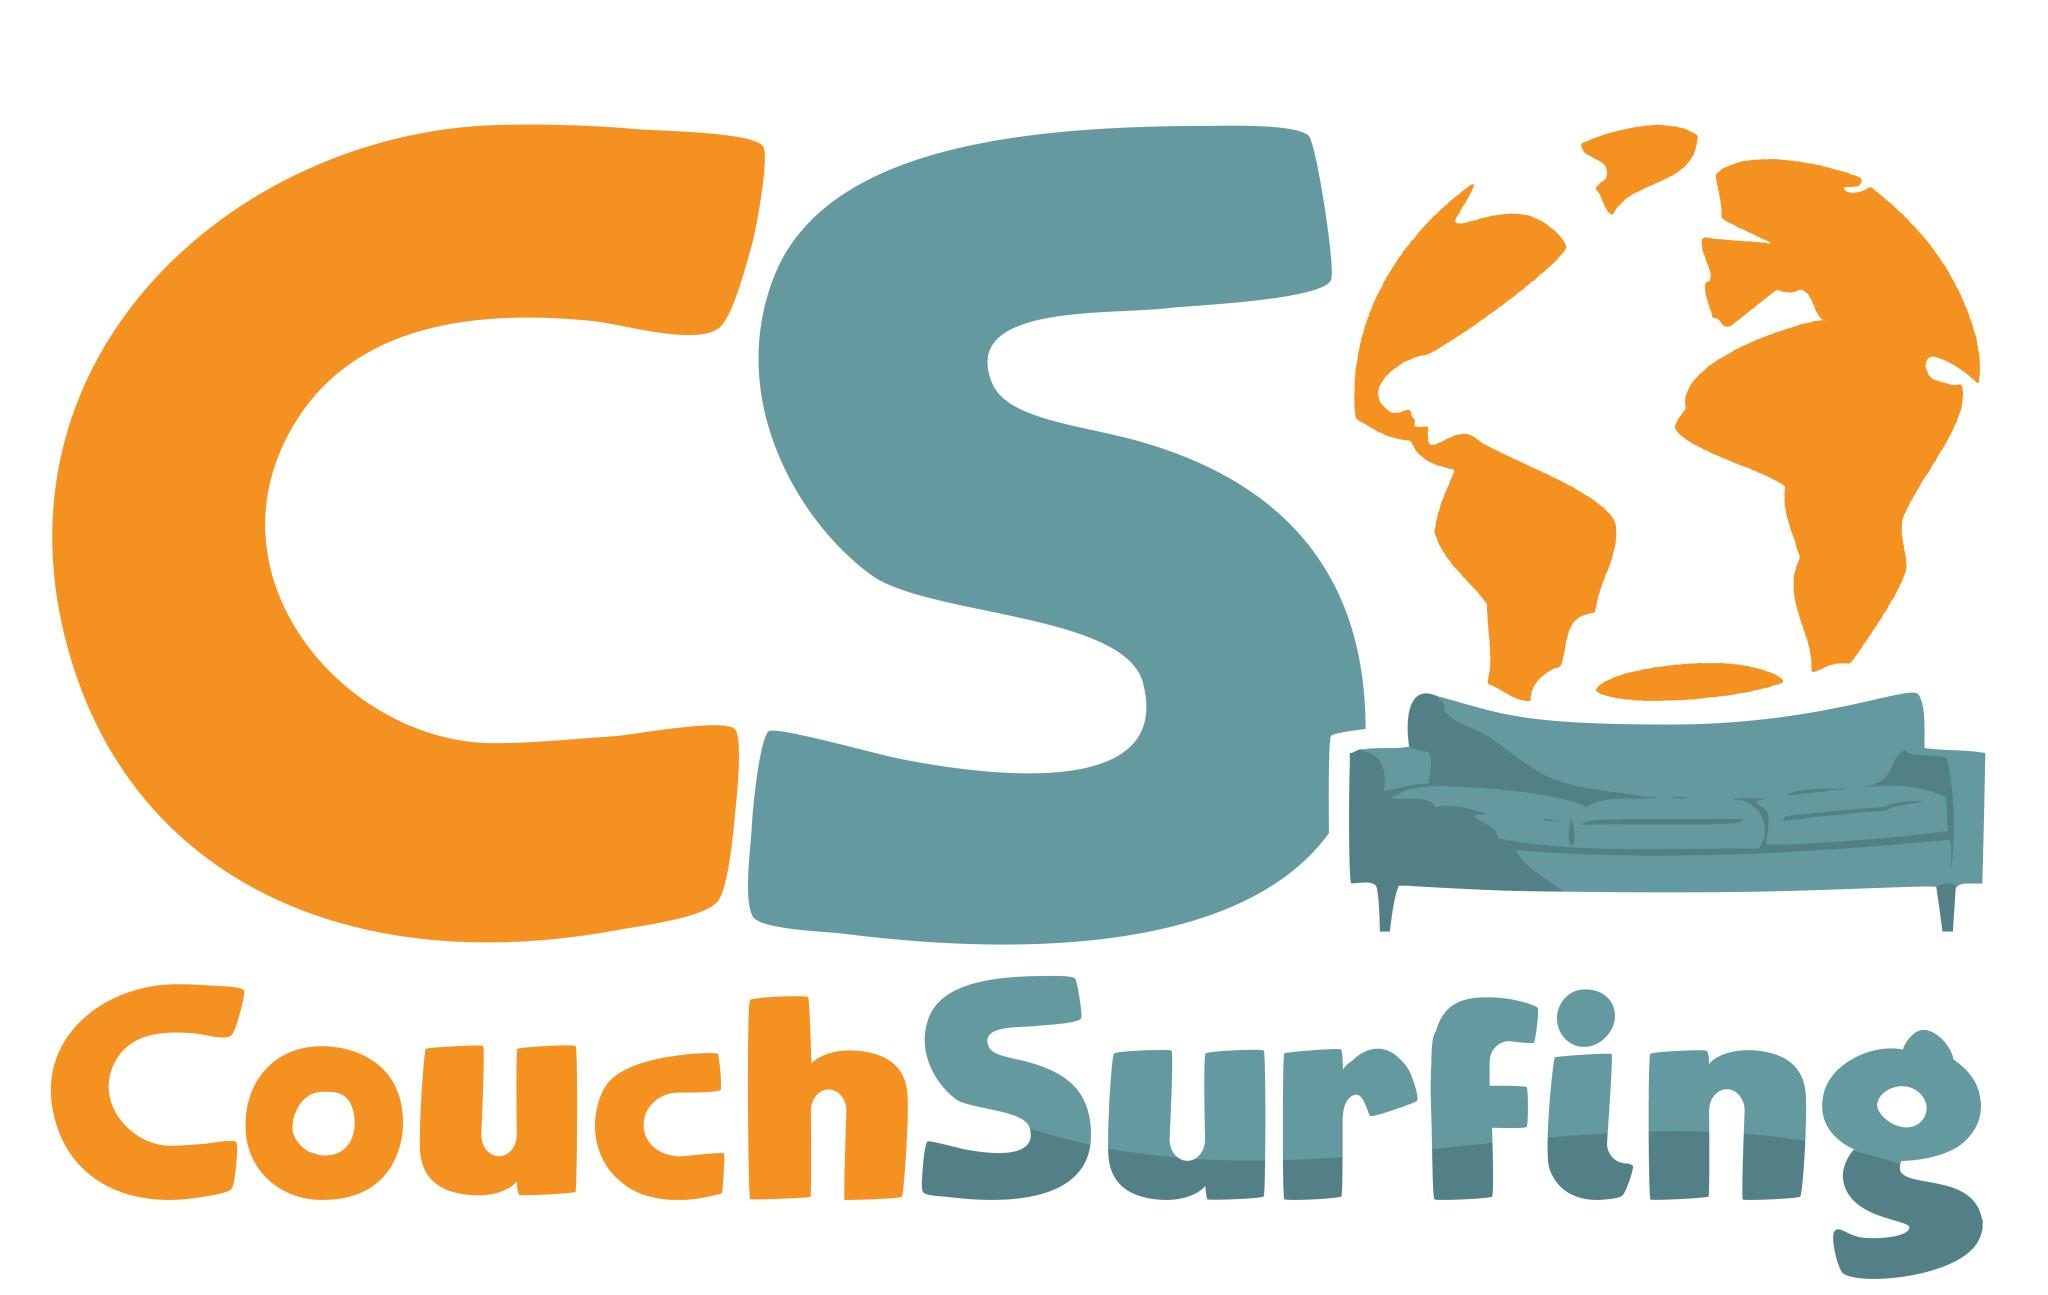 couch-surfing-logo